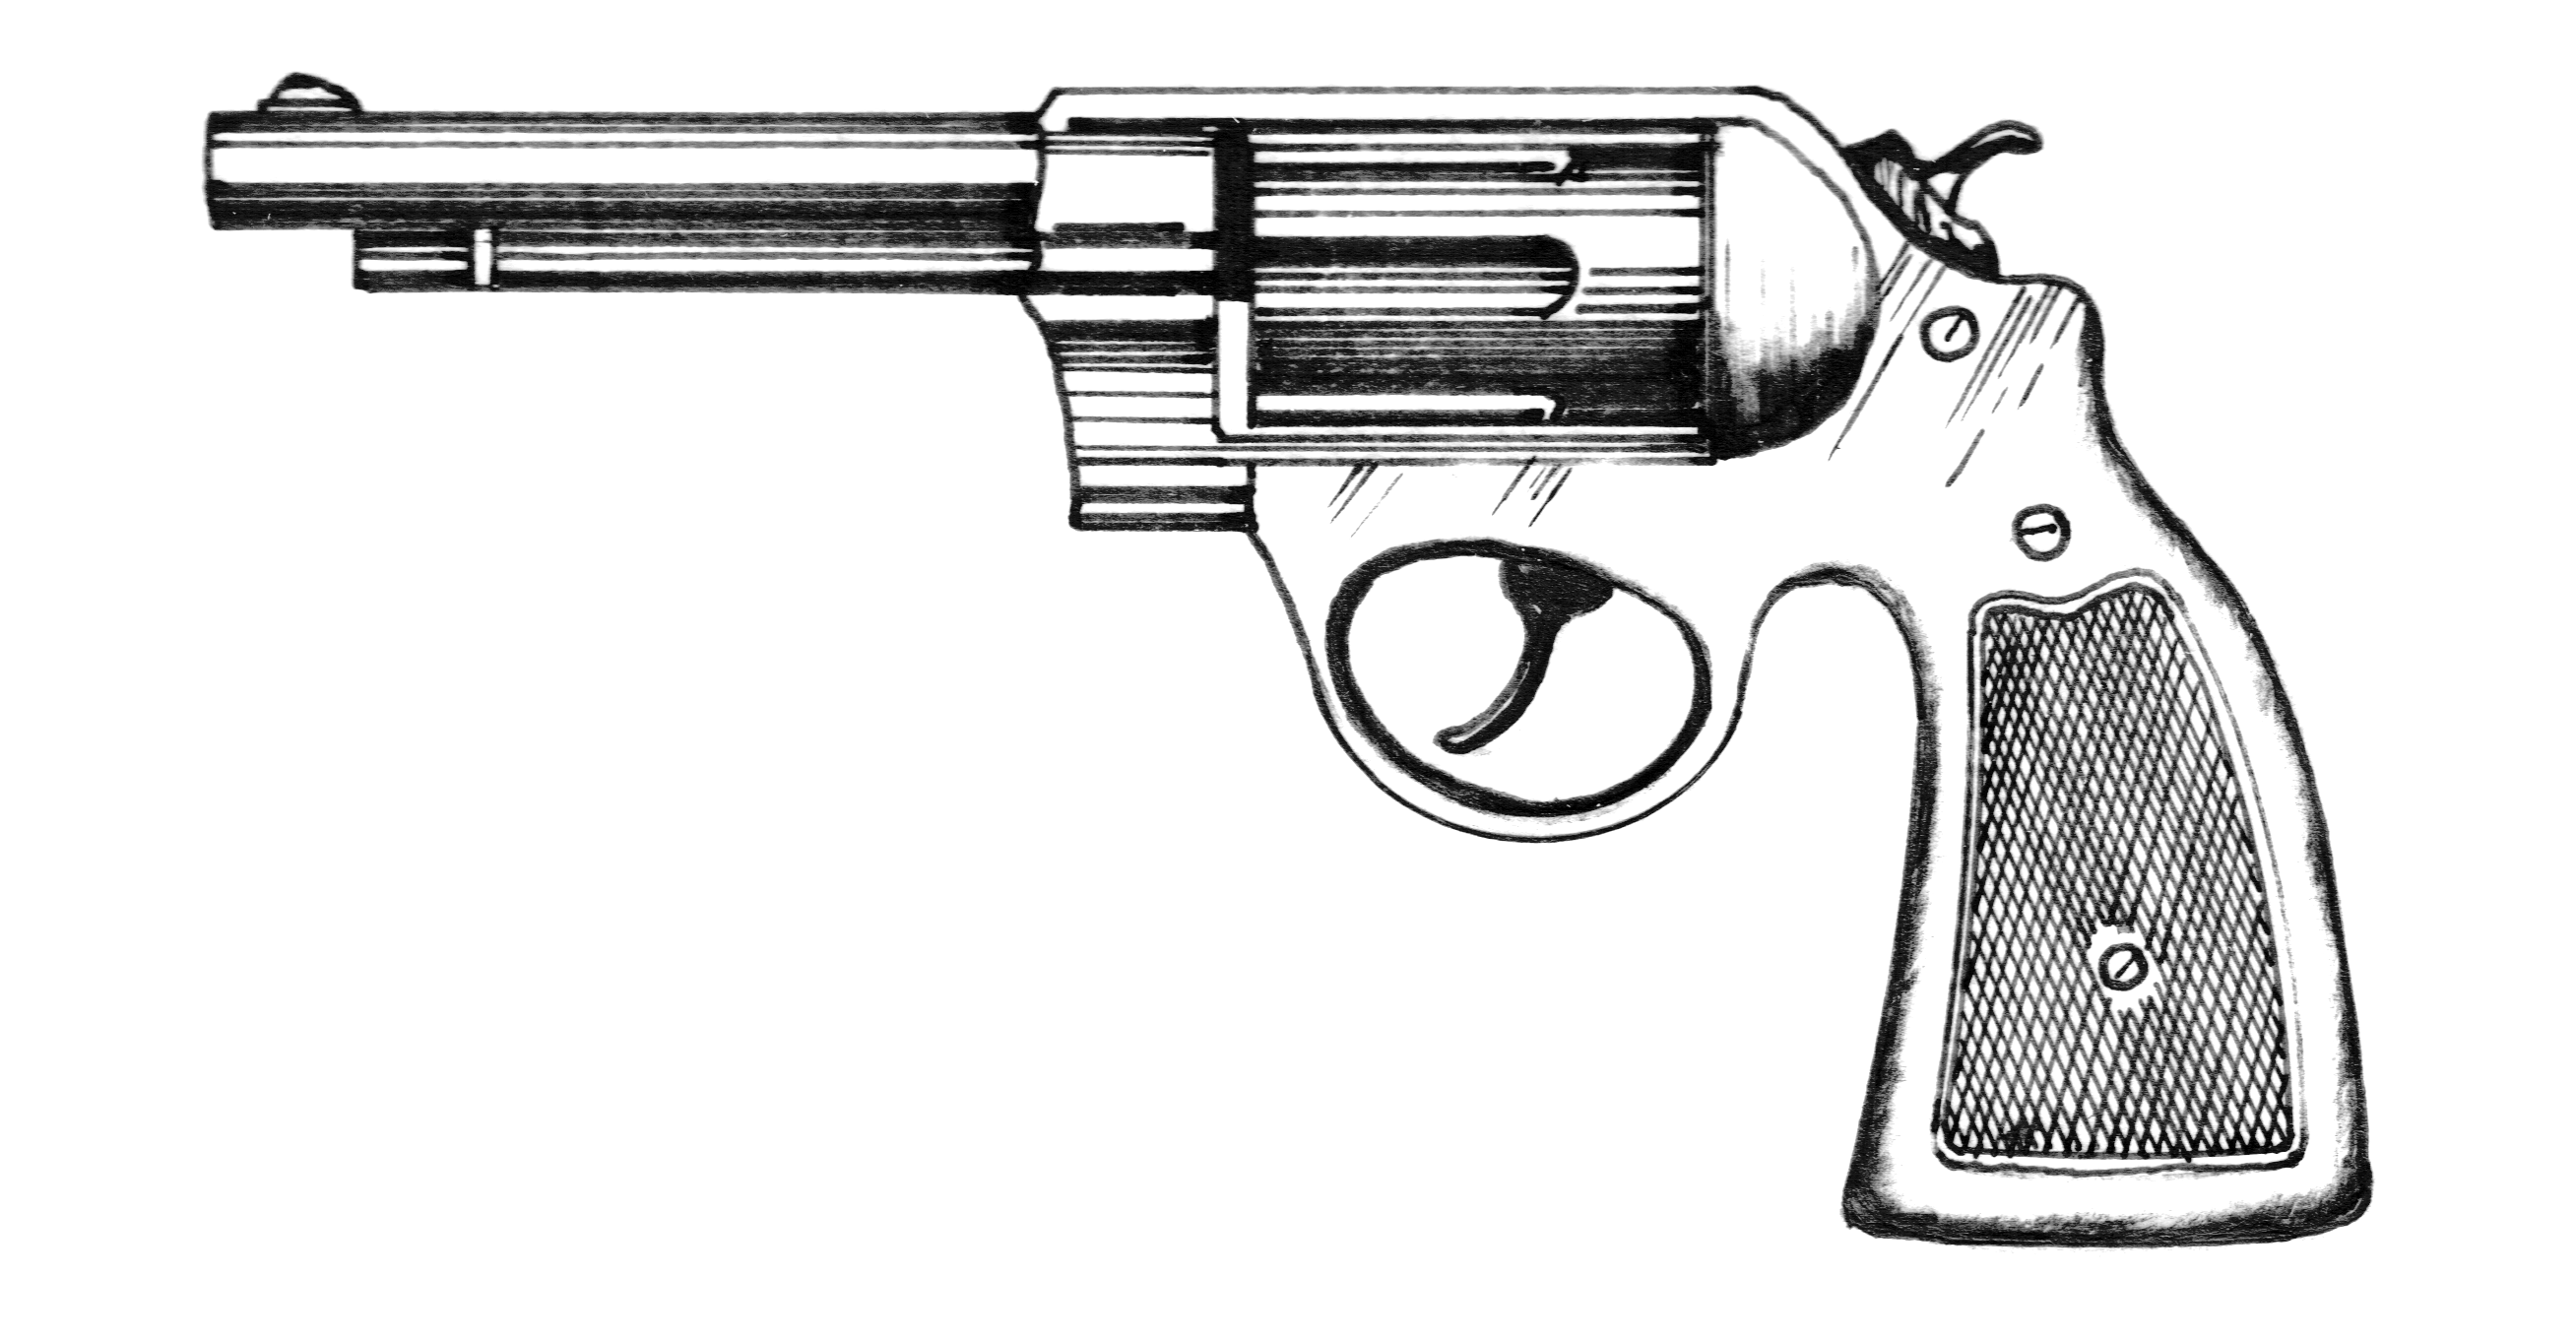 Western Pistols Drawing Revolver 001 Png2616 x 1360